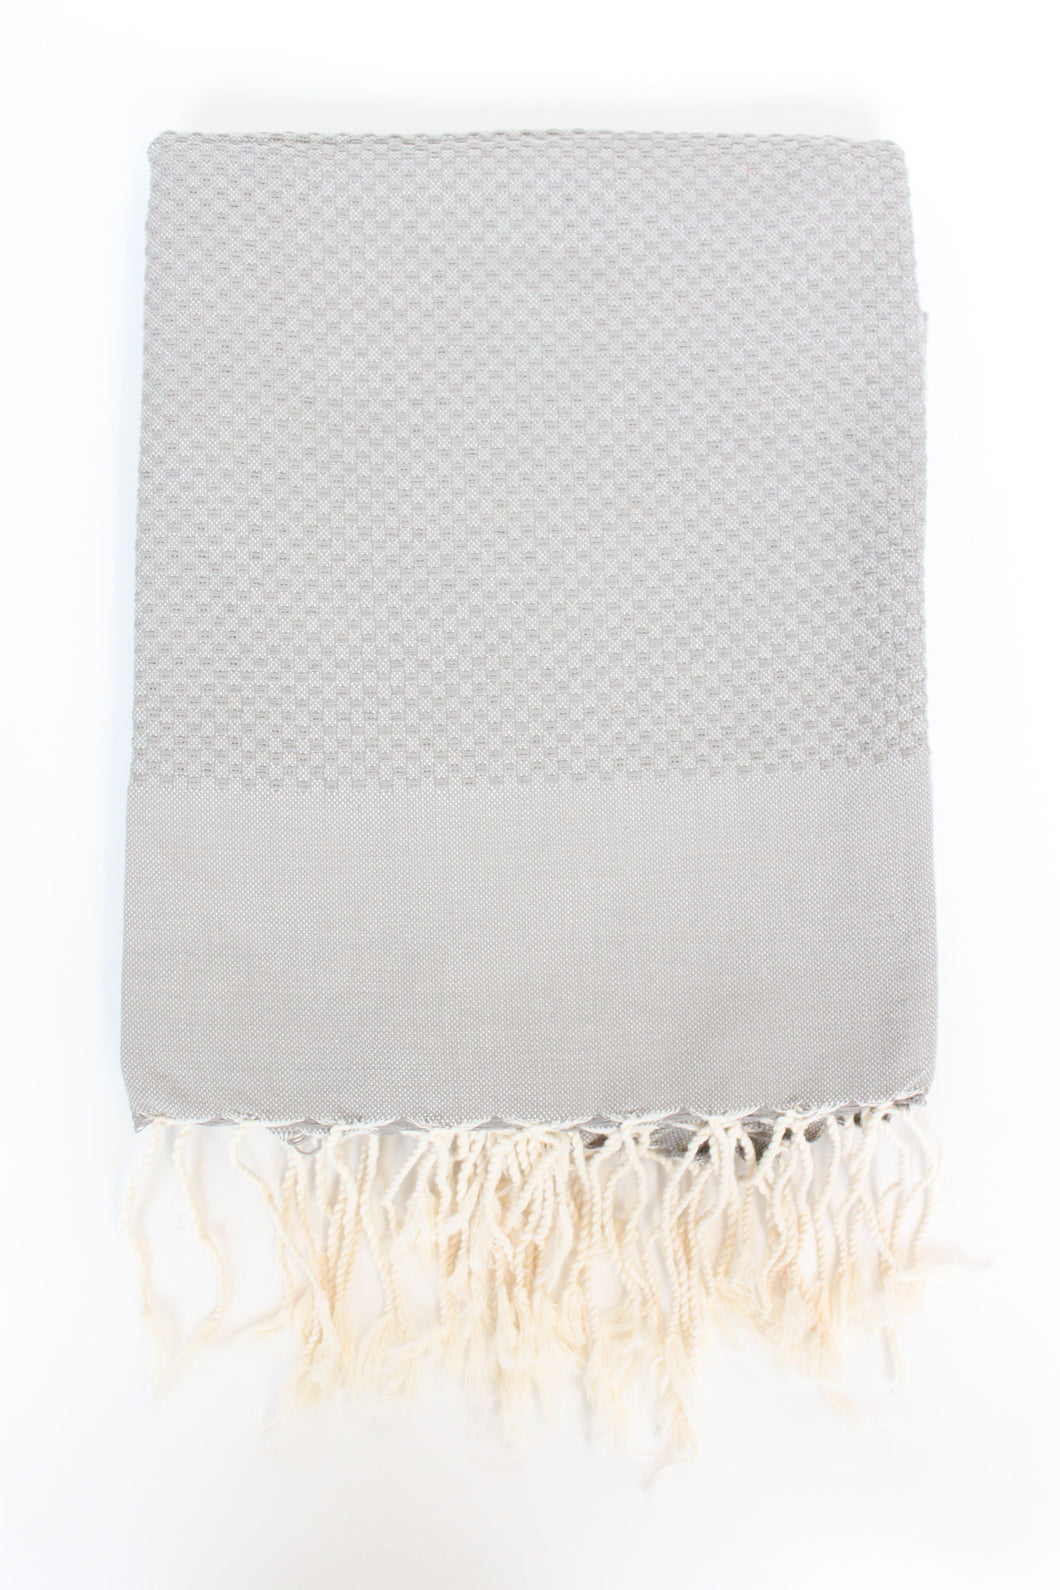 Turkish Towel Honeycomb Stitch in Light Grey